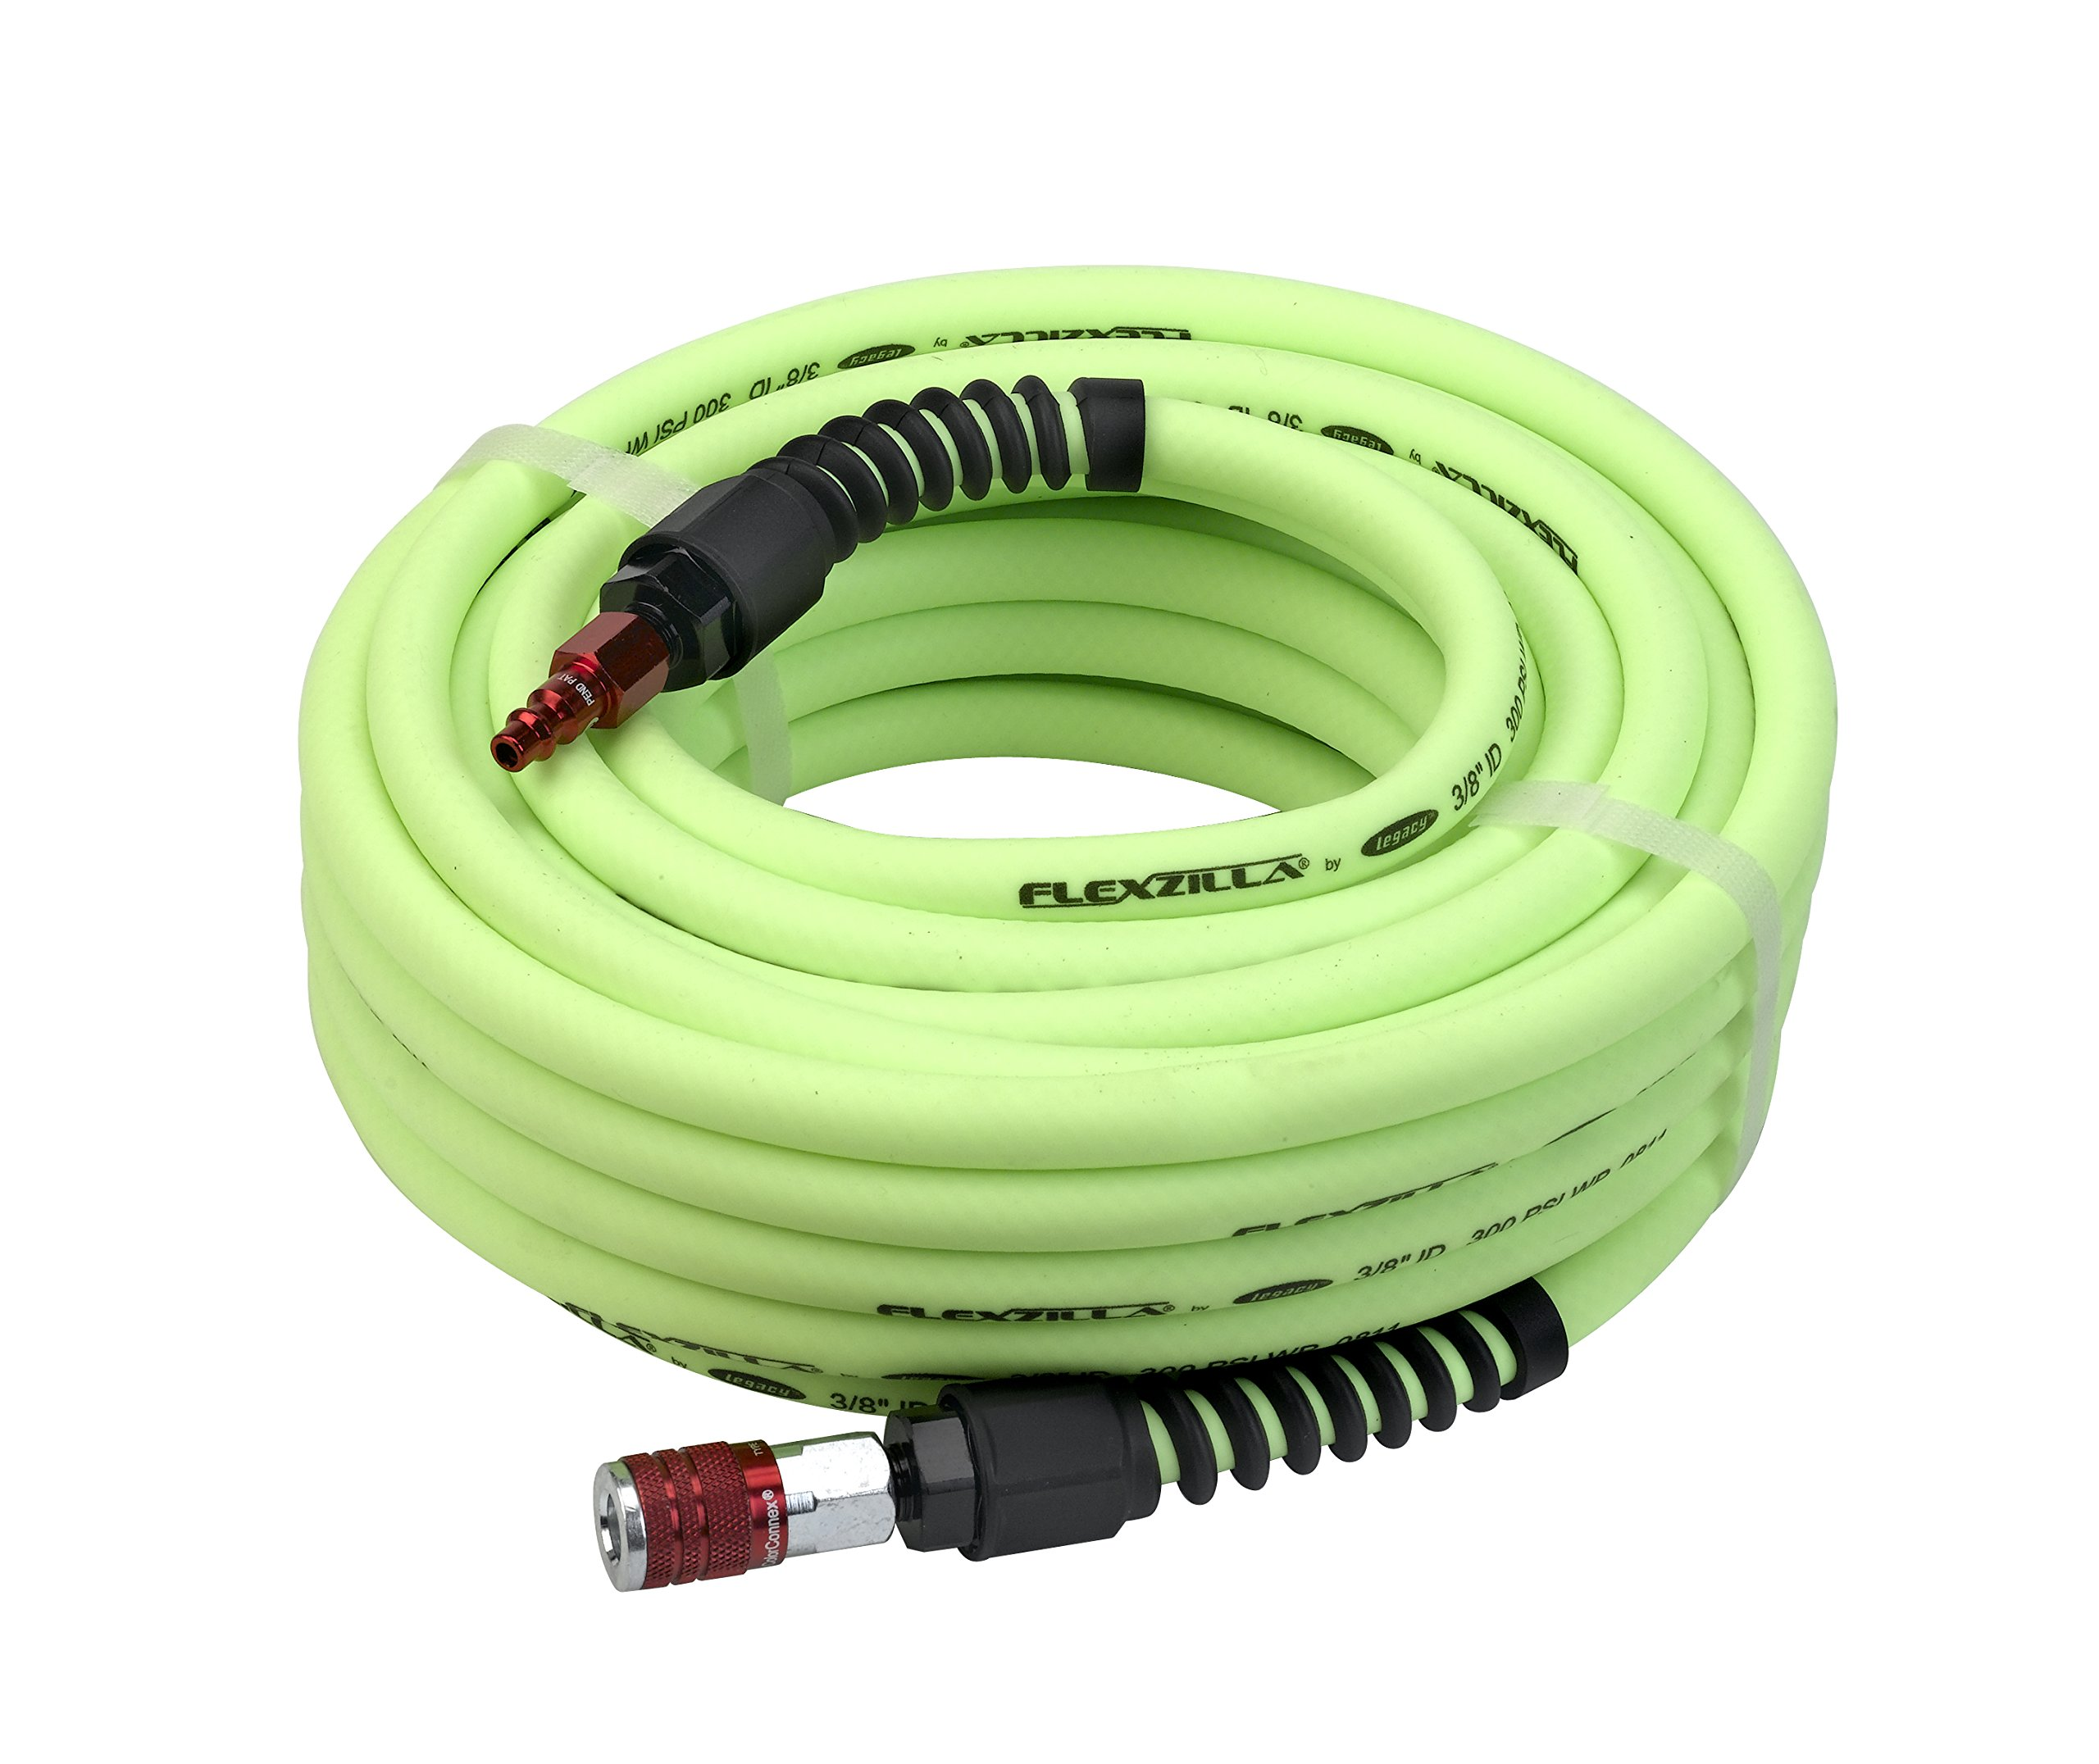 Flexzilla Pro Air Hose with ColorConnex Industrial Type D Coupler and Plug, 3/8 in. x 50 ft, Heavy Duty, Lightweight, Hybrid, ZillaGreen - HFZP3850YW2-D